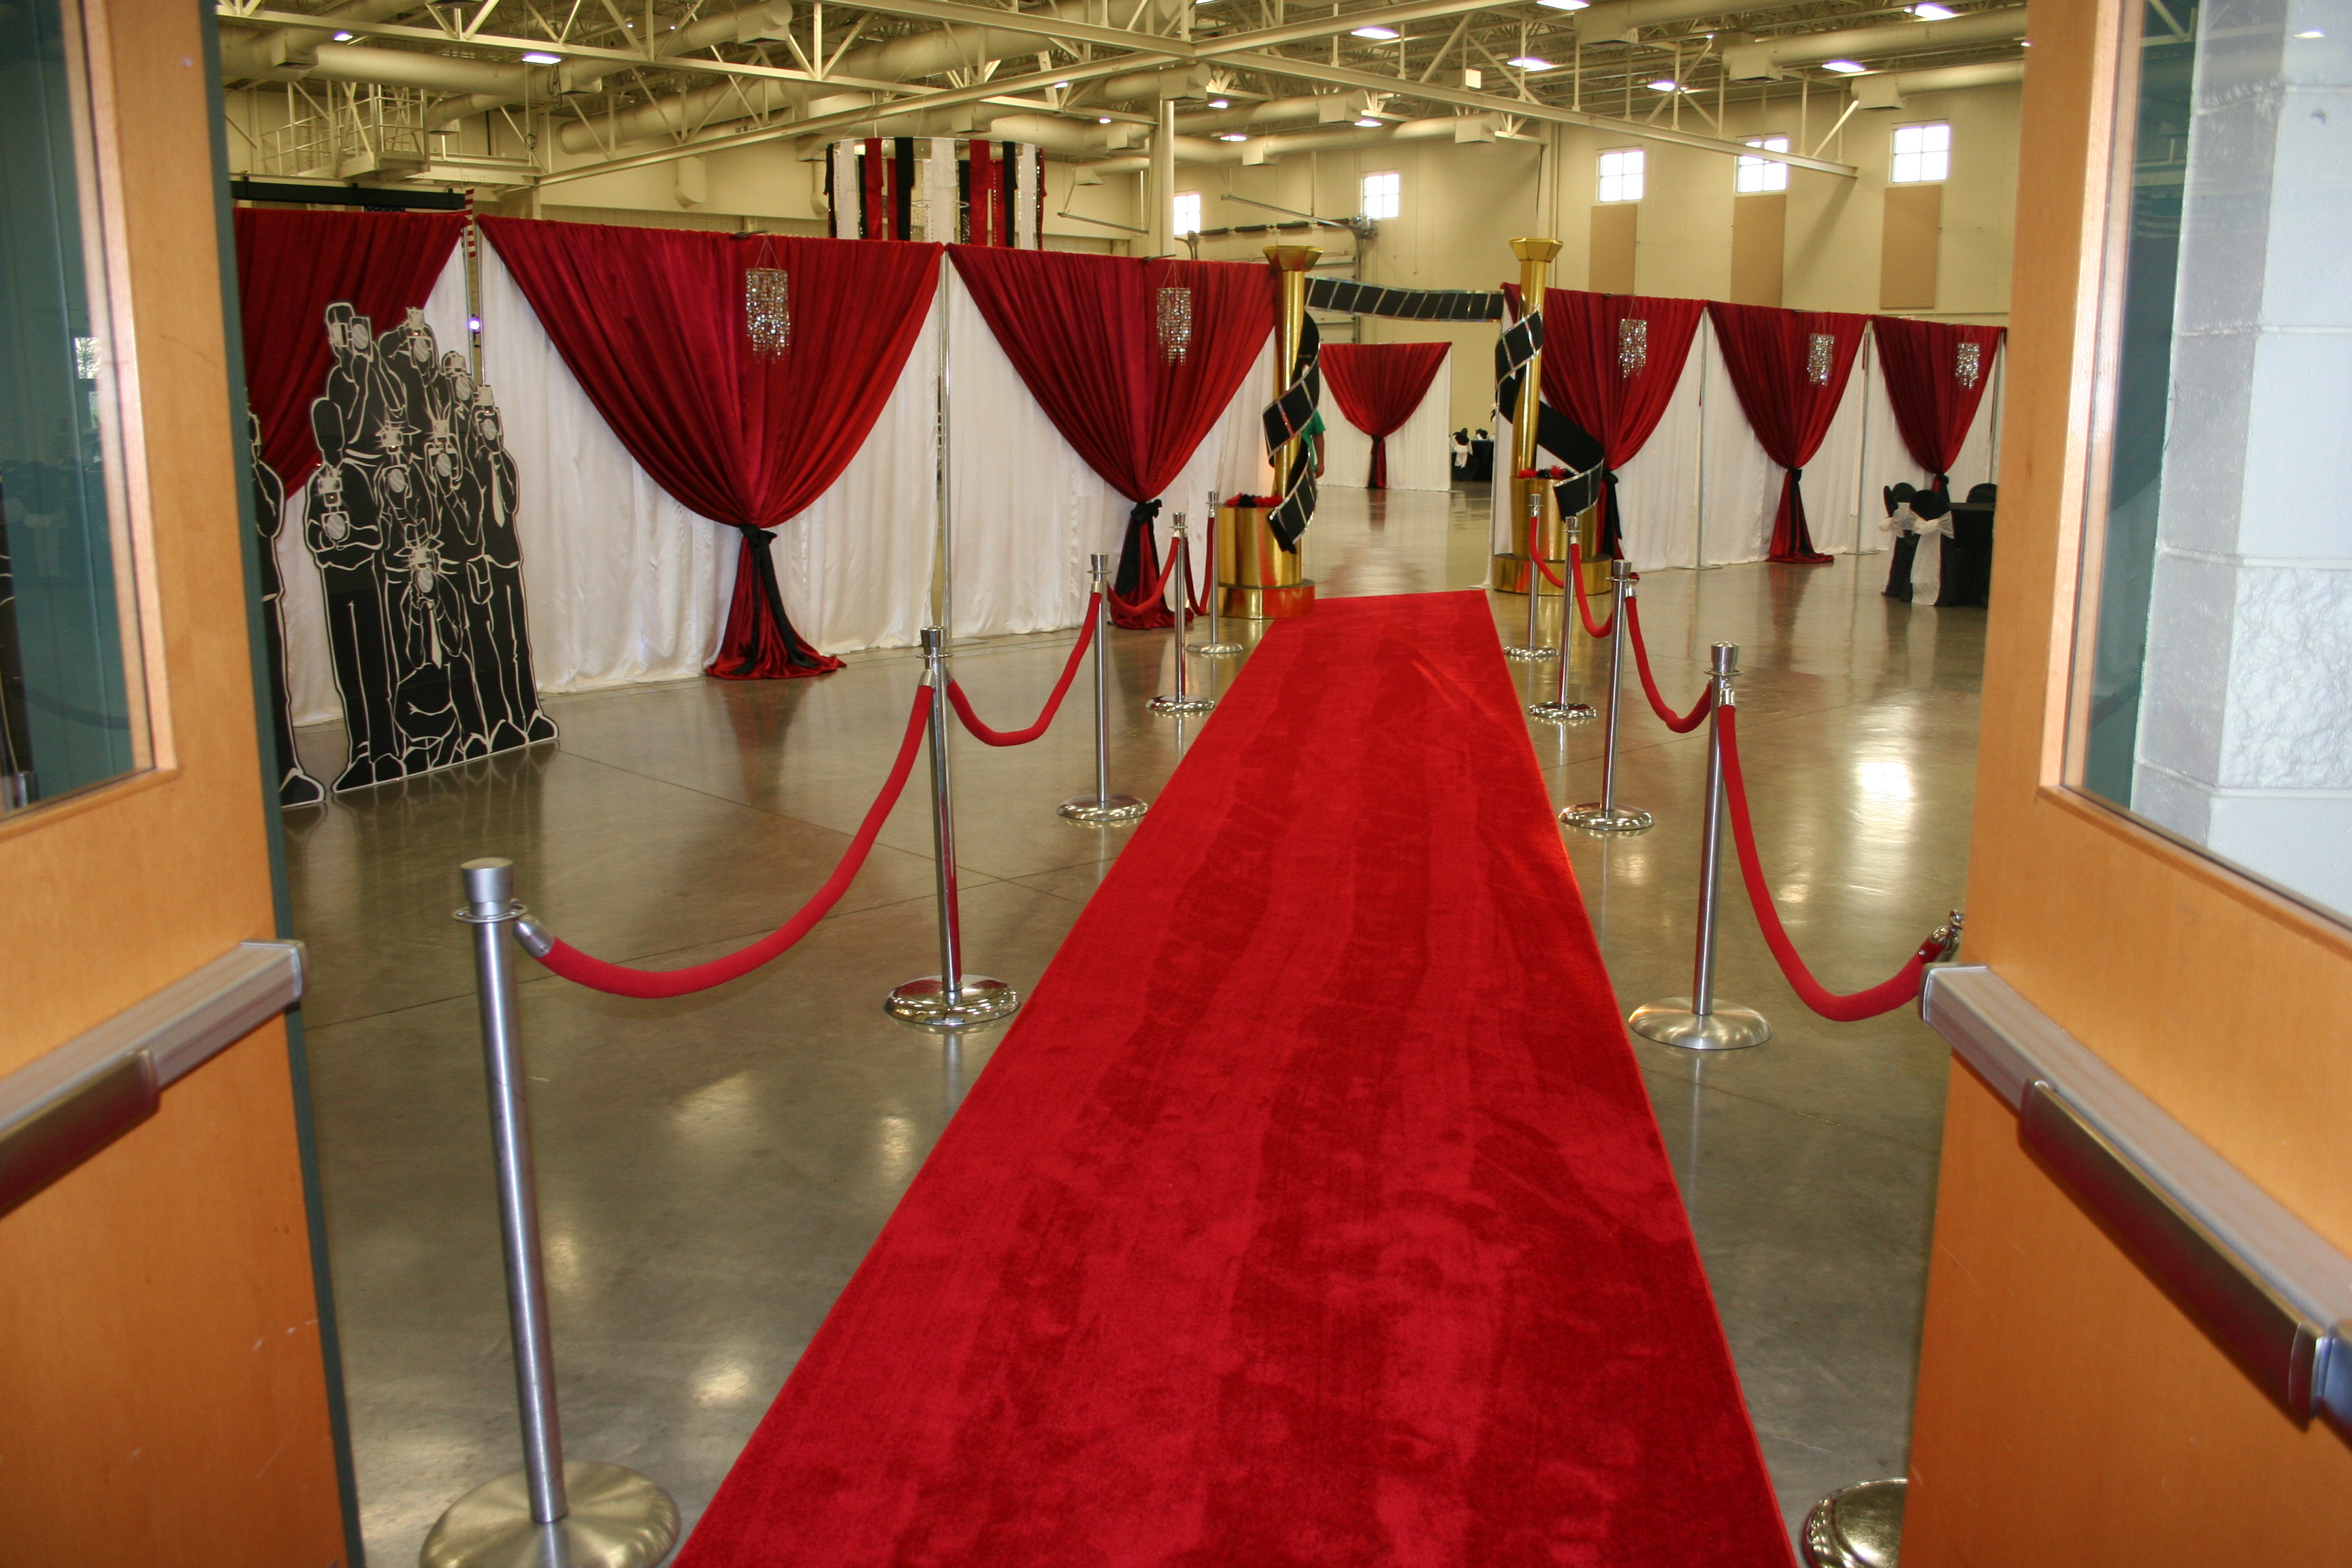 48 39 Red Carpet Entrance With Flashing Paparazzi Carpet Leading To